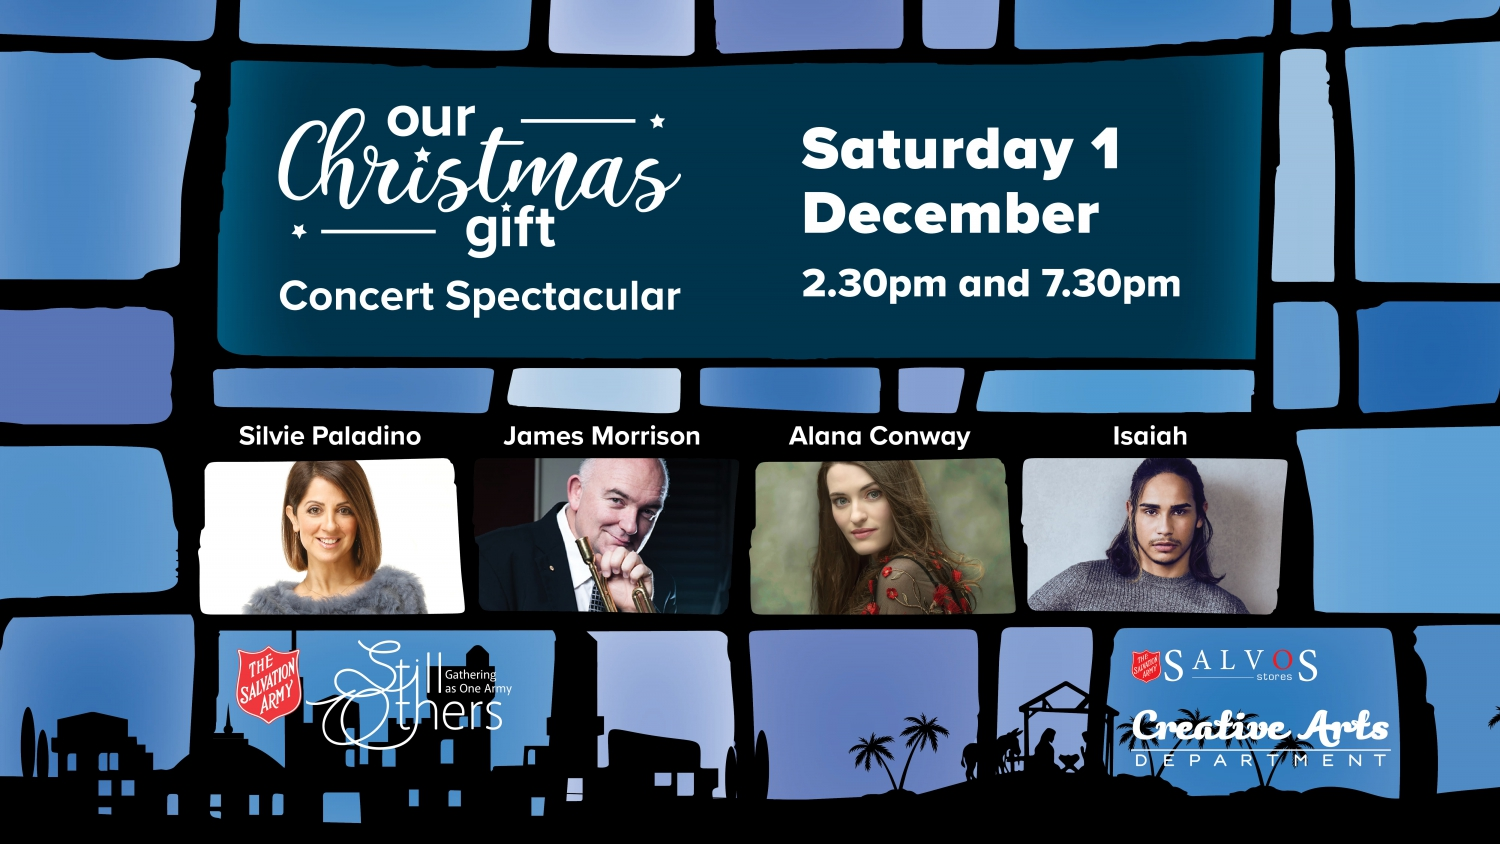 Christmas Gift Concert Spectacular